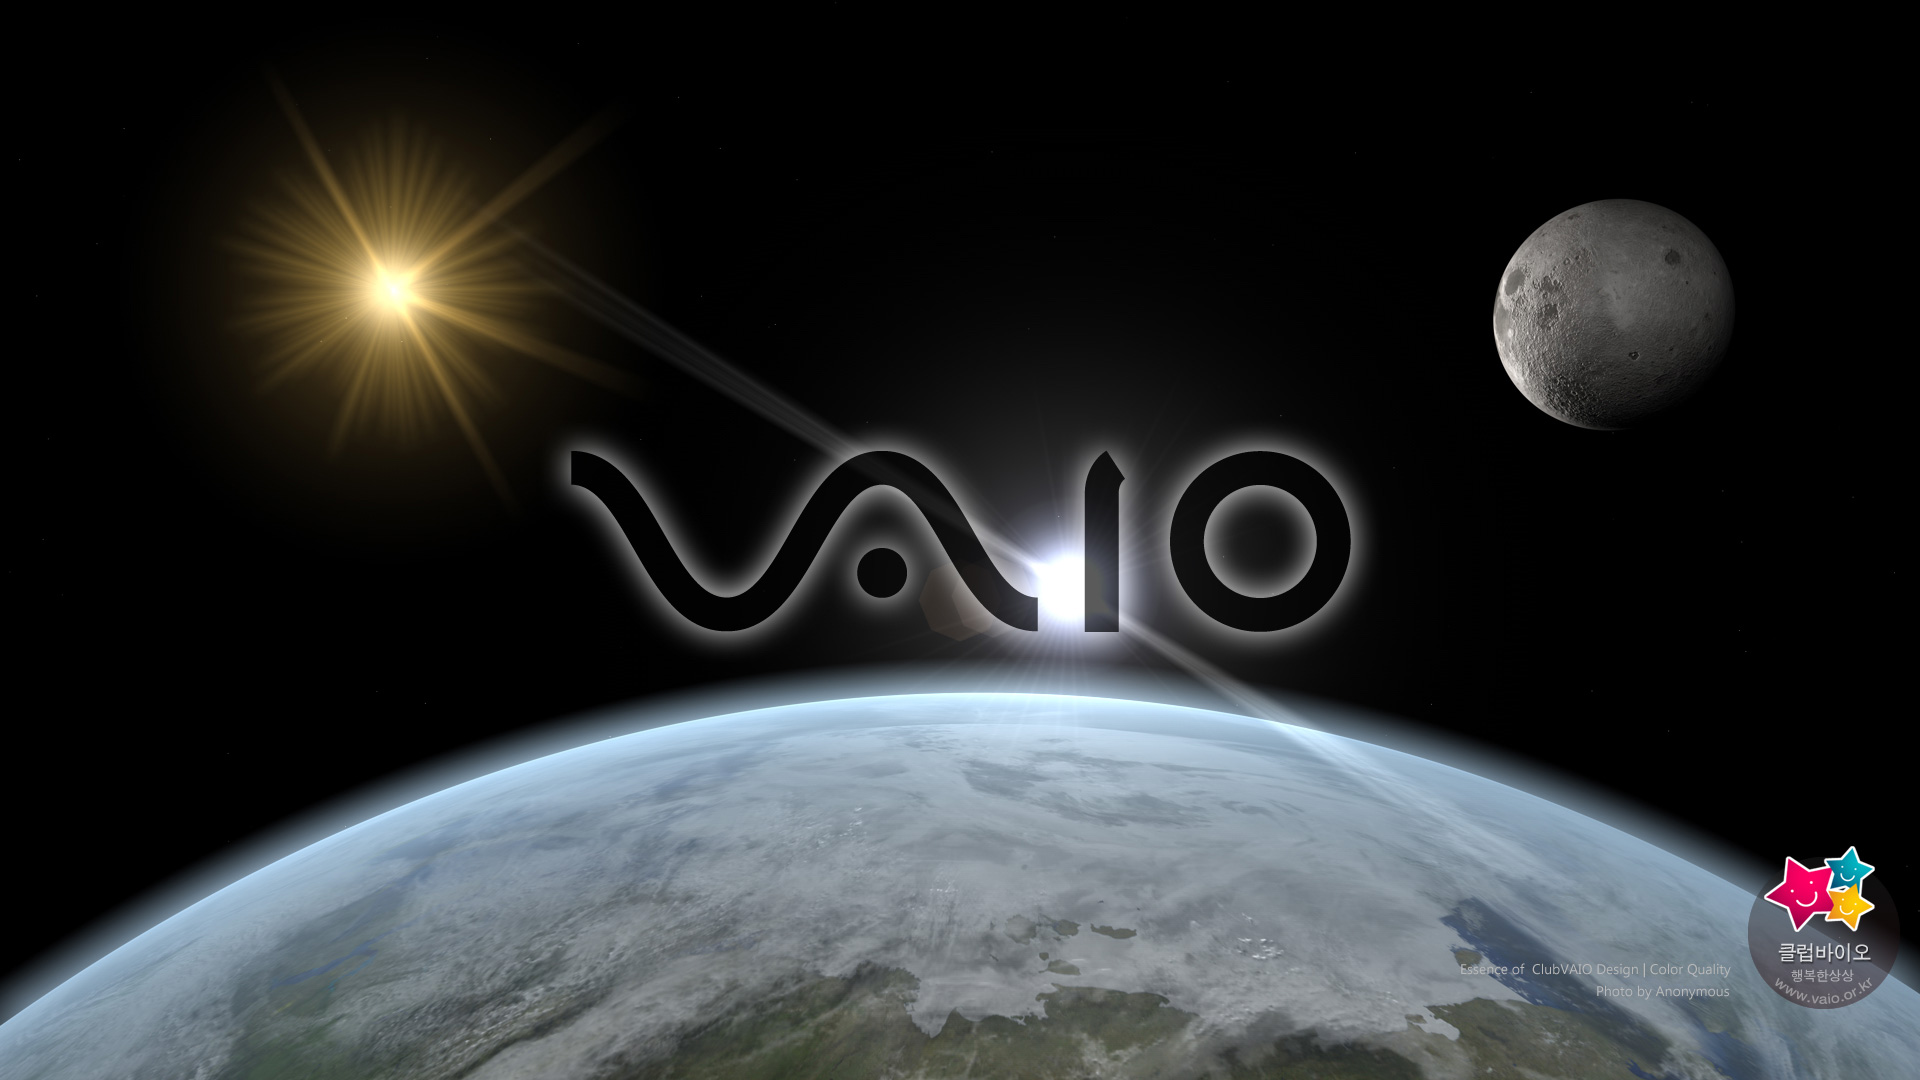 sony vaio desktop wallpaper hd